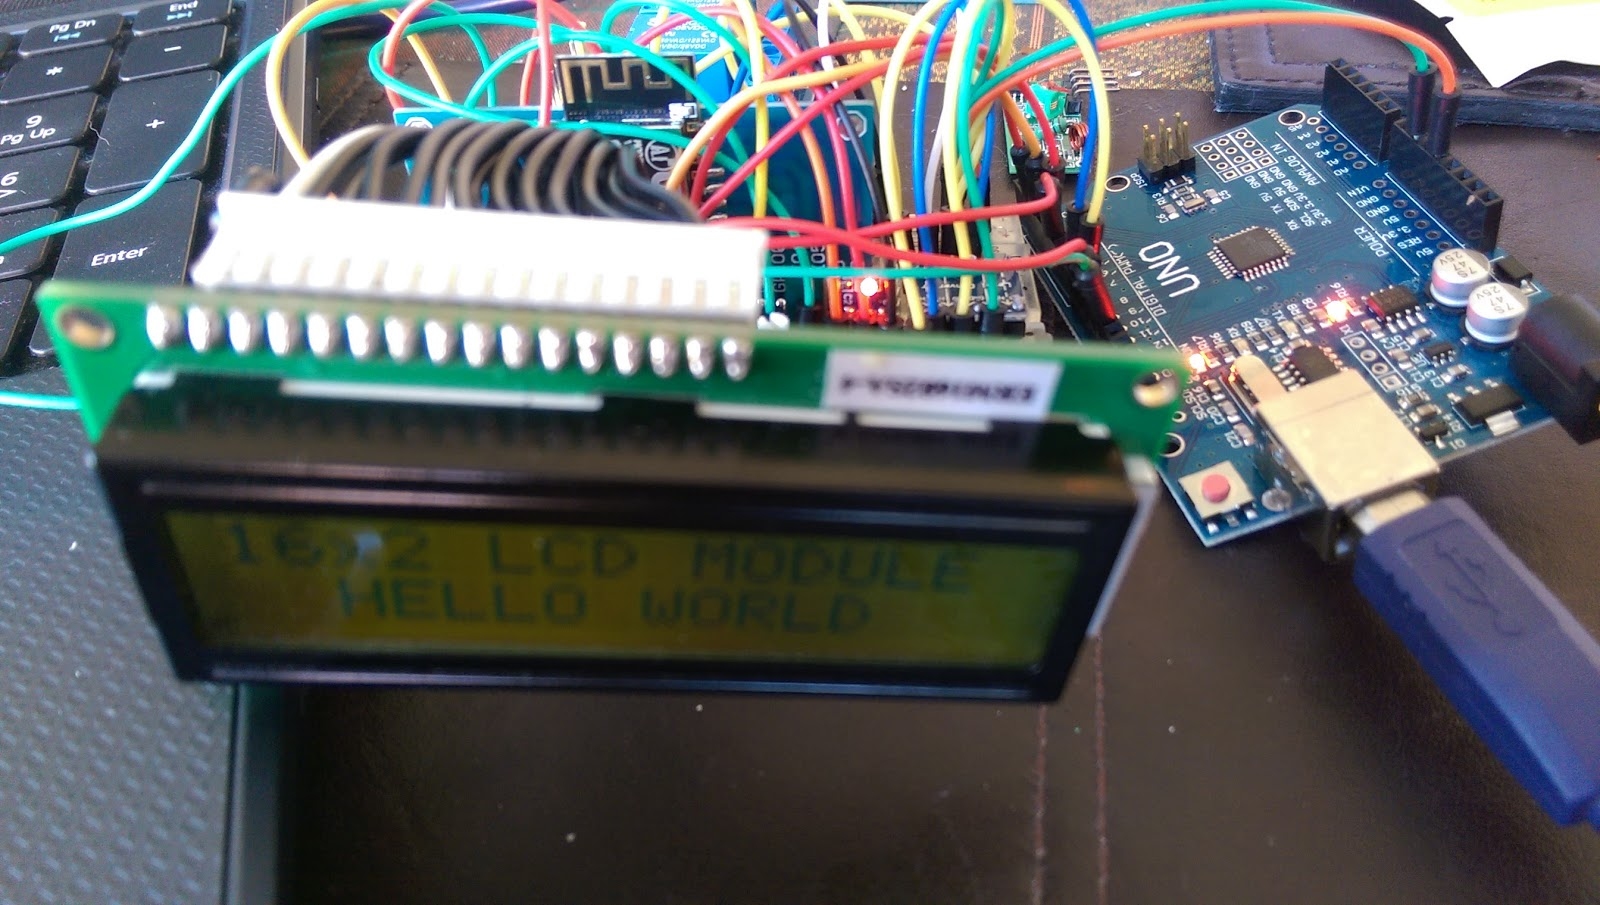 Project: Heating timer/thermostat replacement with Arduino